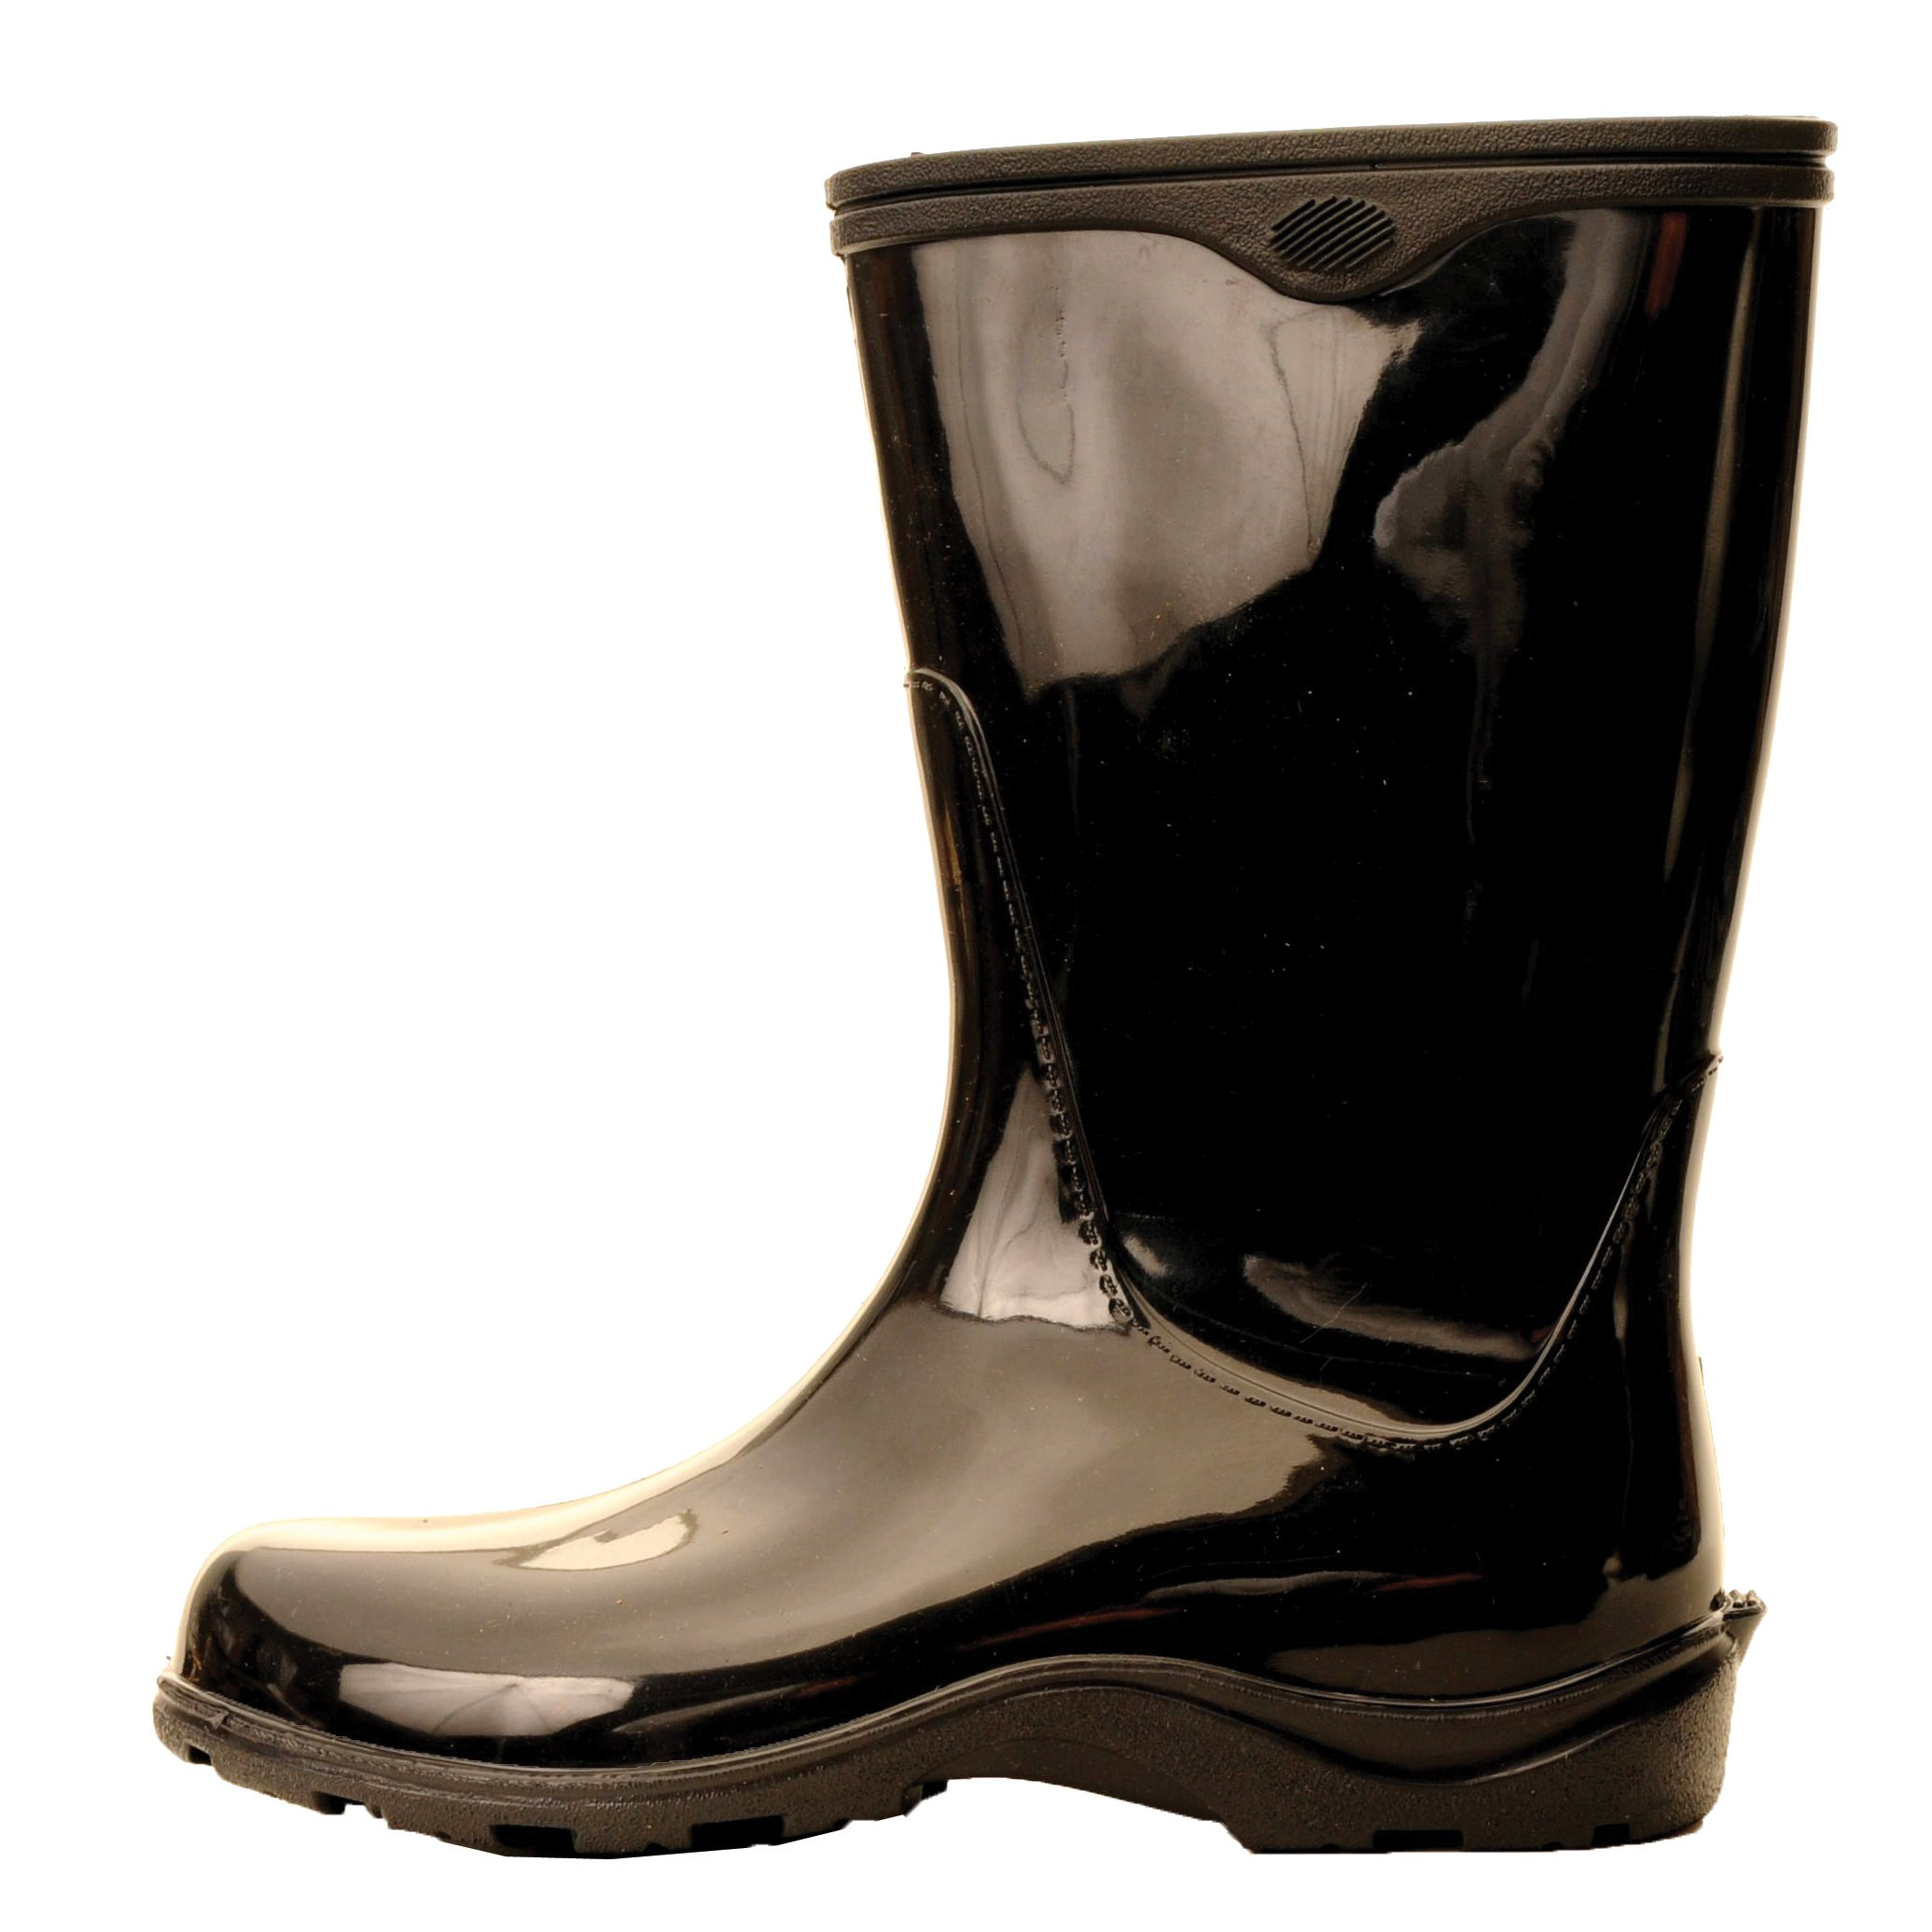 Sloggers Women's  Waterproof Rain and Garden Boot with Comfort Insole,  Classic Black, Size 10, Style 5000BK10